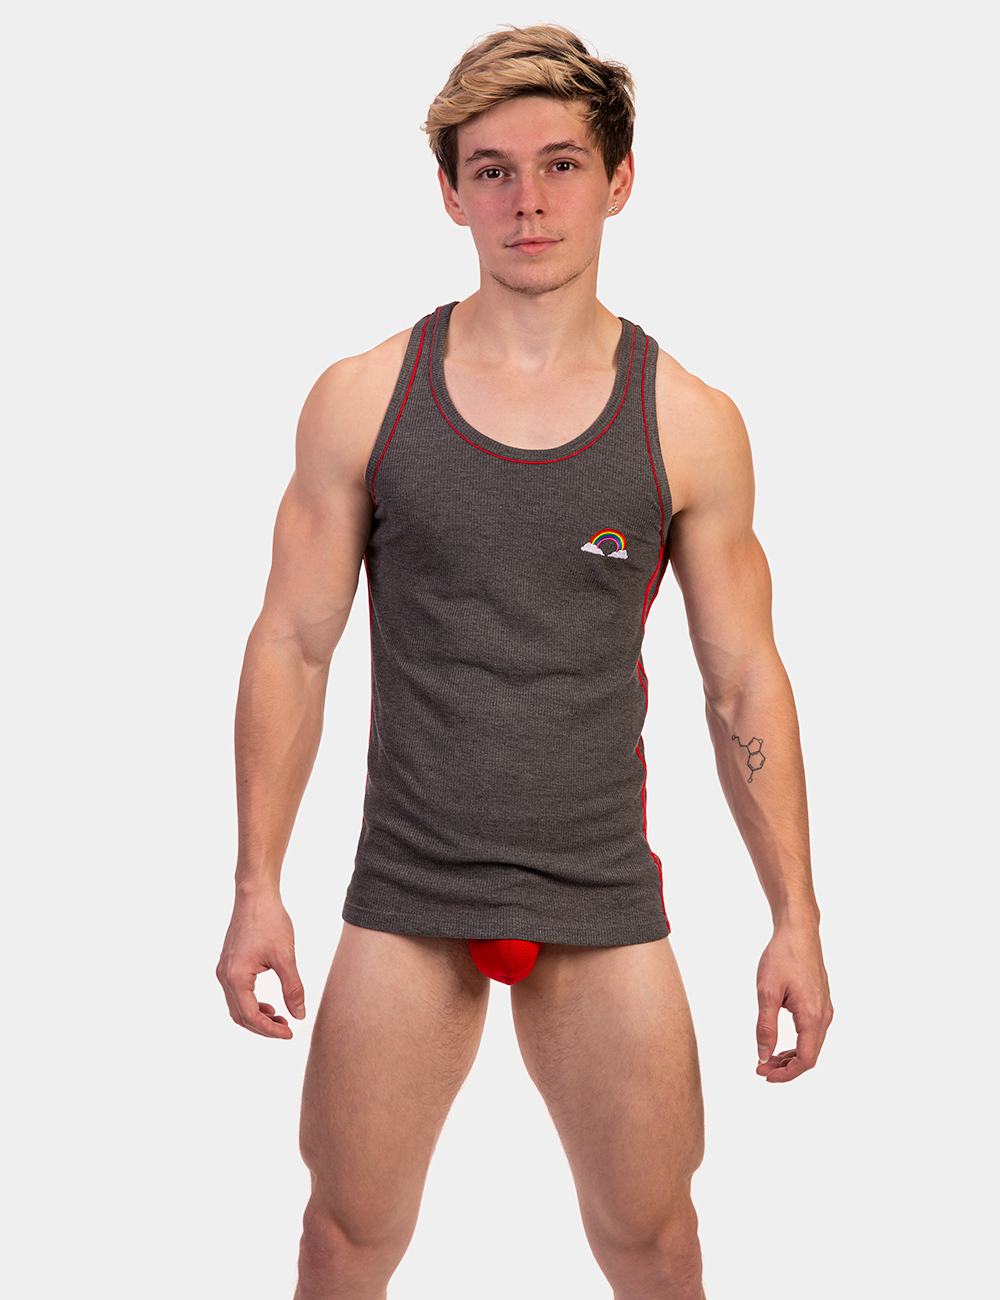 BC 91825 grey-red M Tank Top Ricardo